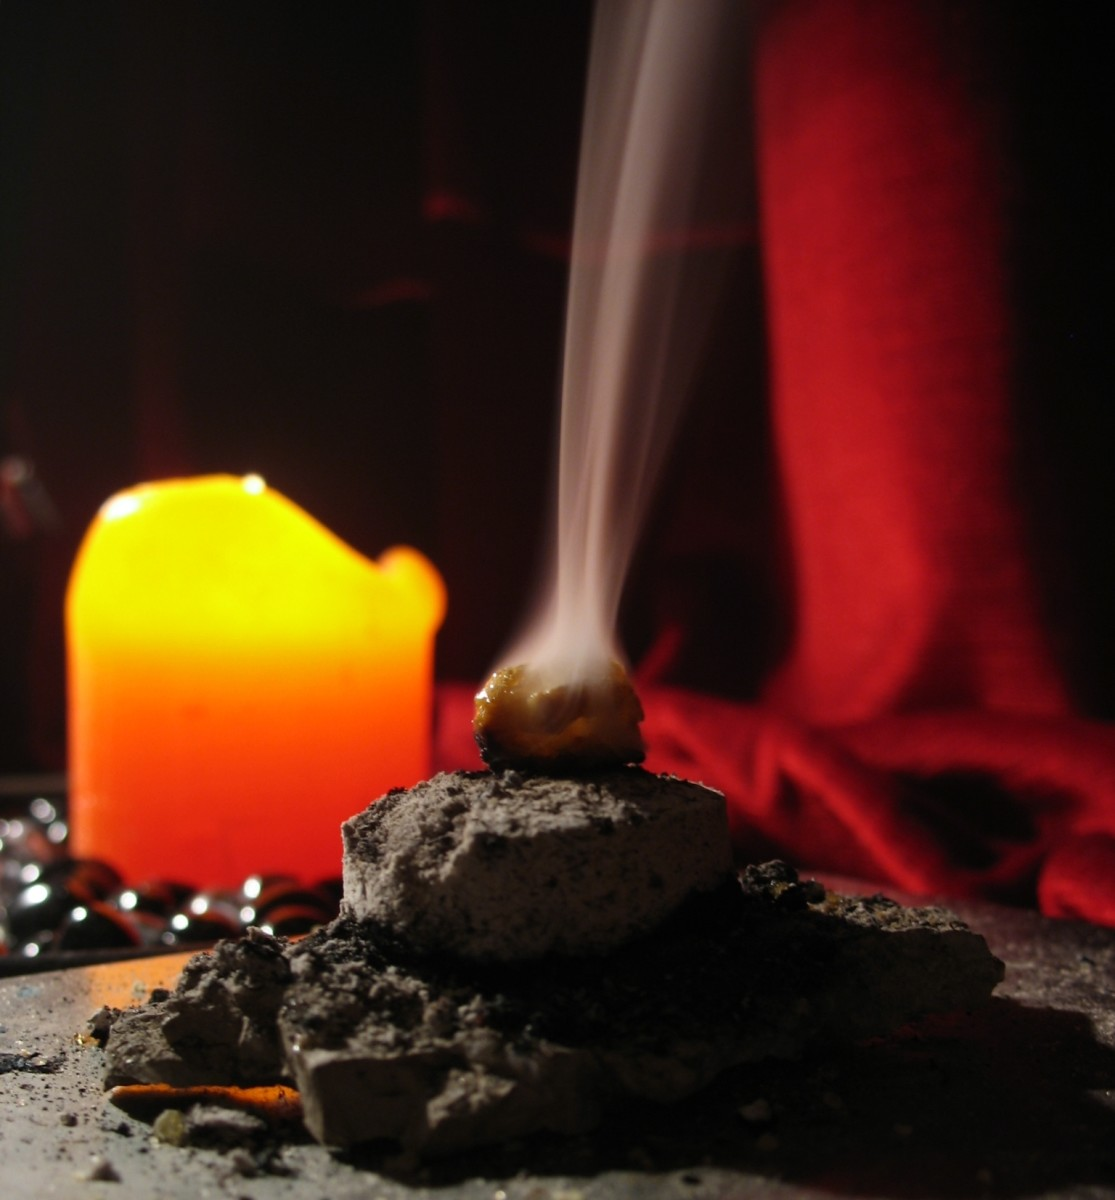 frankincense being burnt on hot coals.